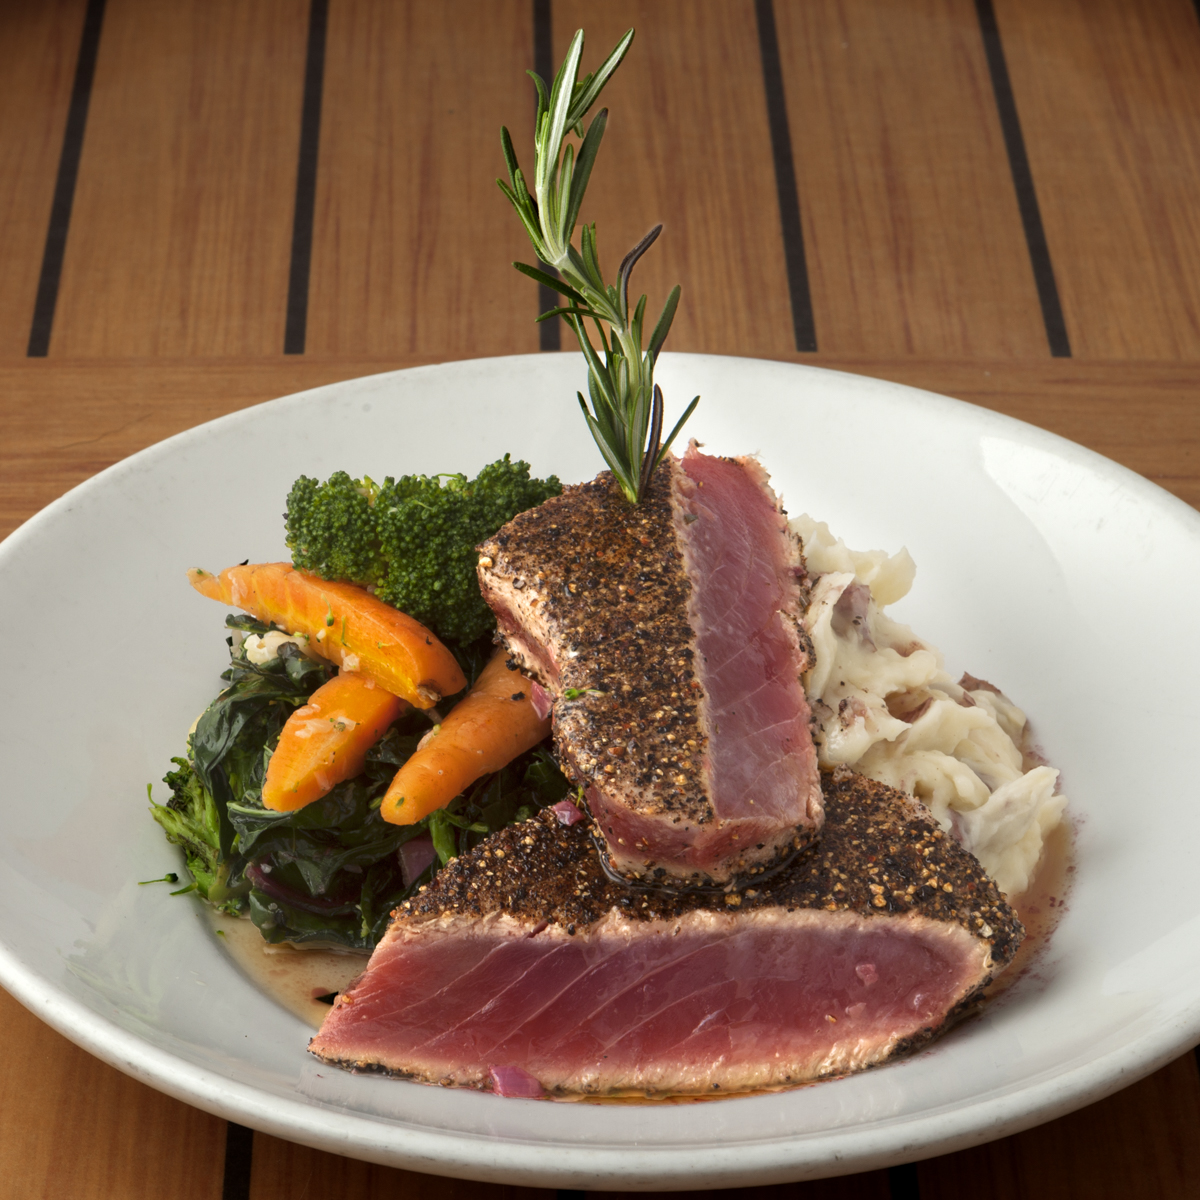 Seared Tuna Steak with Farm Raised Vegtables